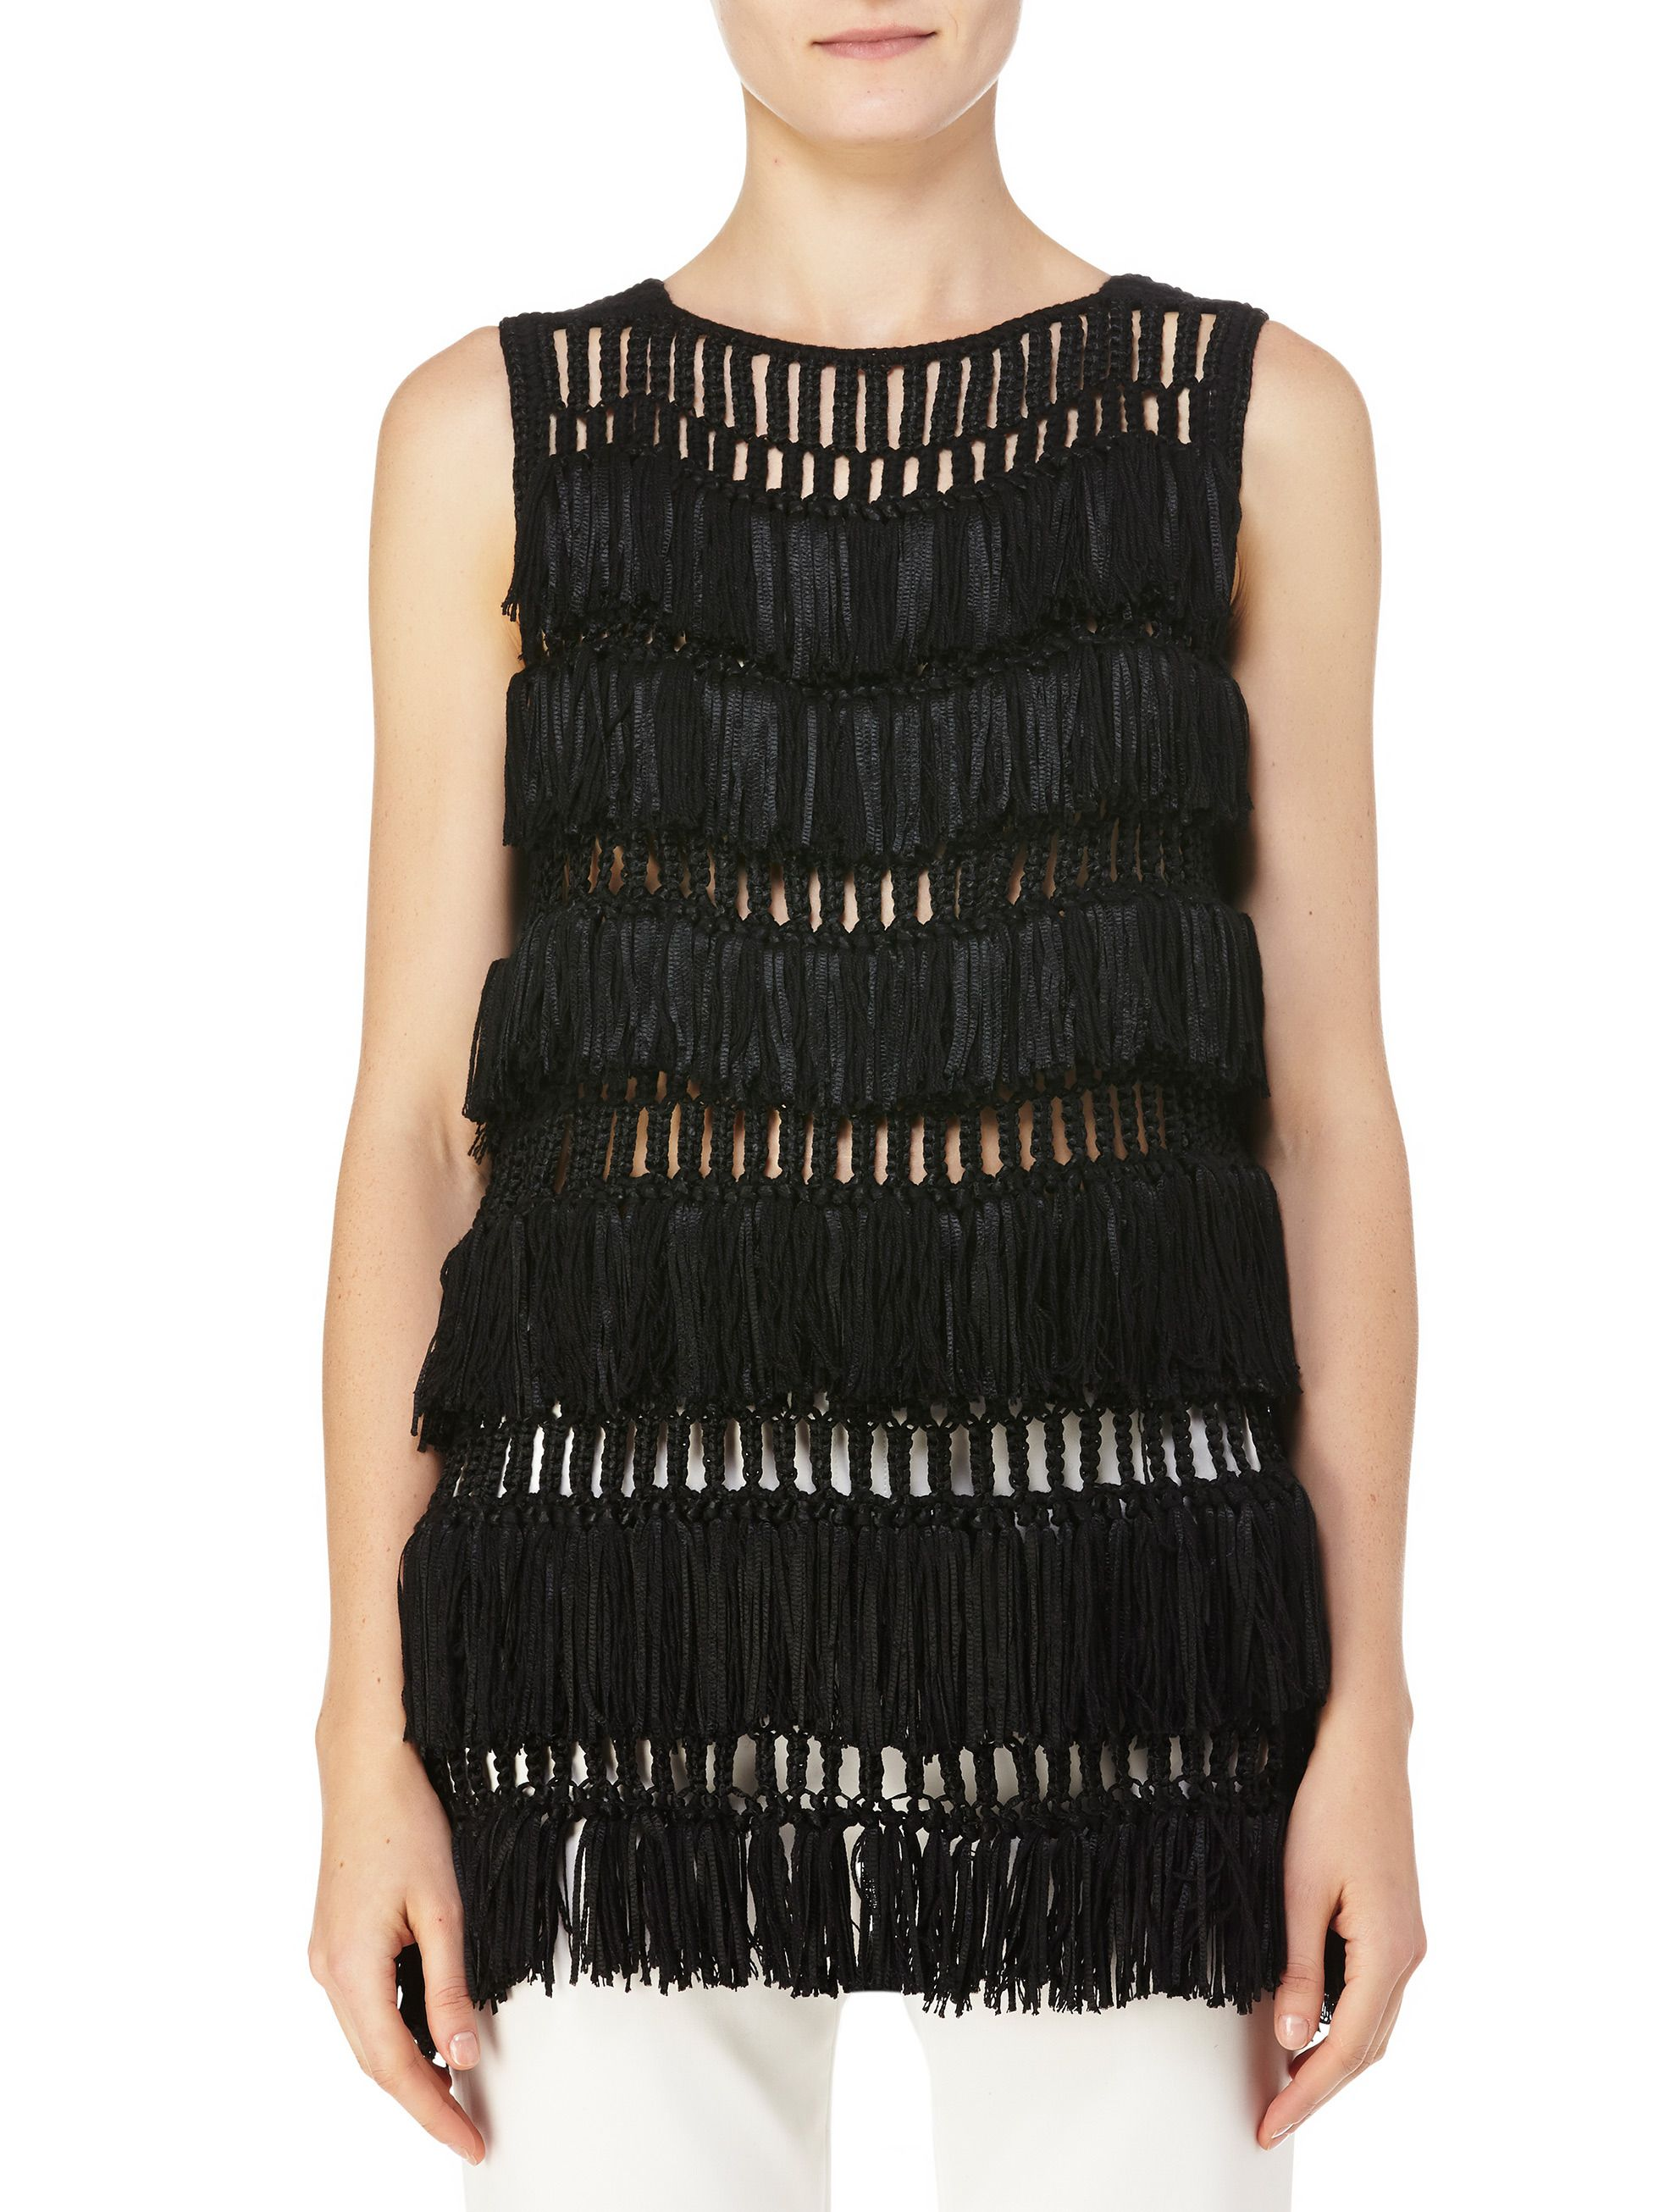 Sleeveless Fringed Tunic: Hand knit in Bolivia from cashmere-silk blend yarns.